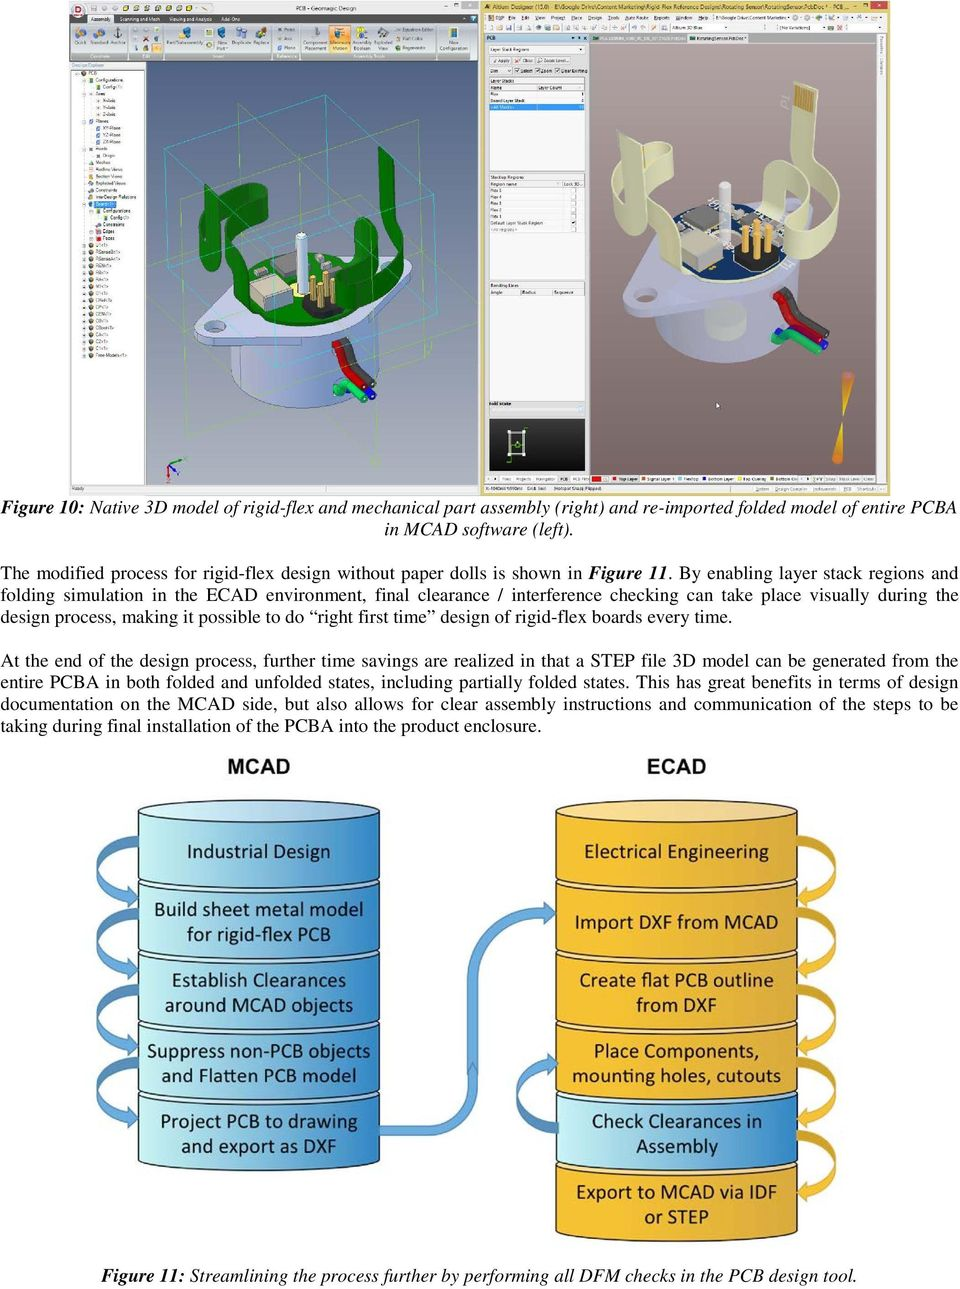 By enabling layer stack regions and folding simulation in the ECAD environment, final clearance / interference checking can take place visually during the design process, making it possible to do